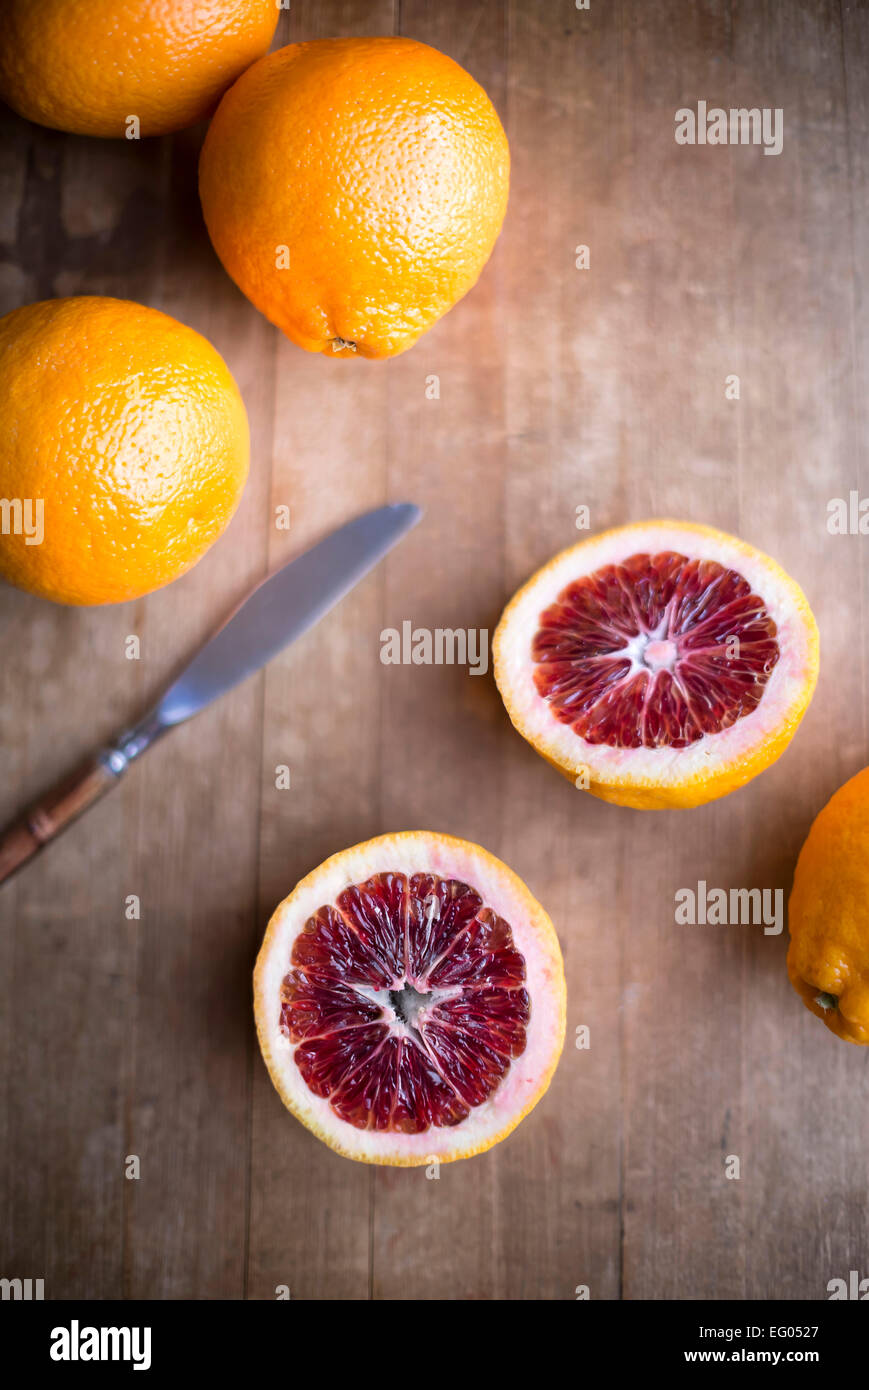 Blood oranges whole and sliced on a rustic wood cutting board with knife. - Stock Image